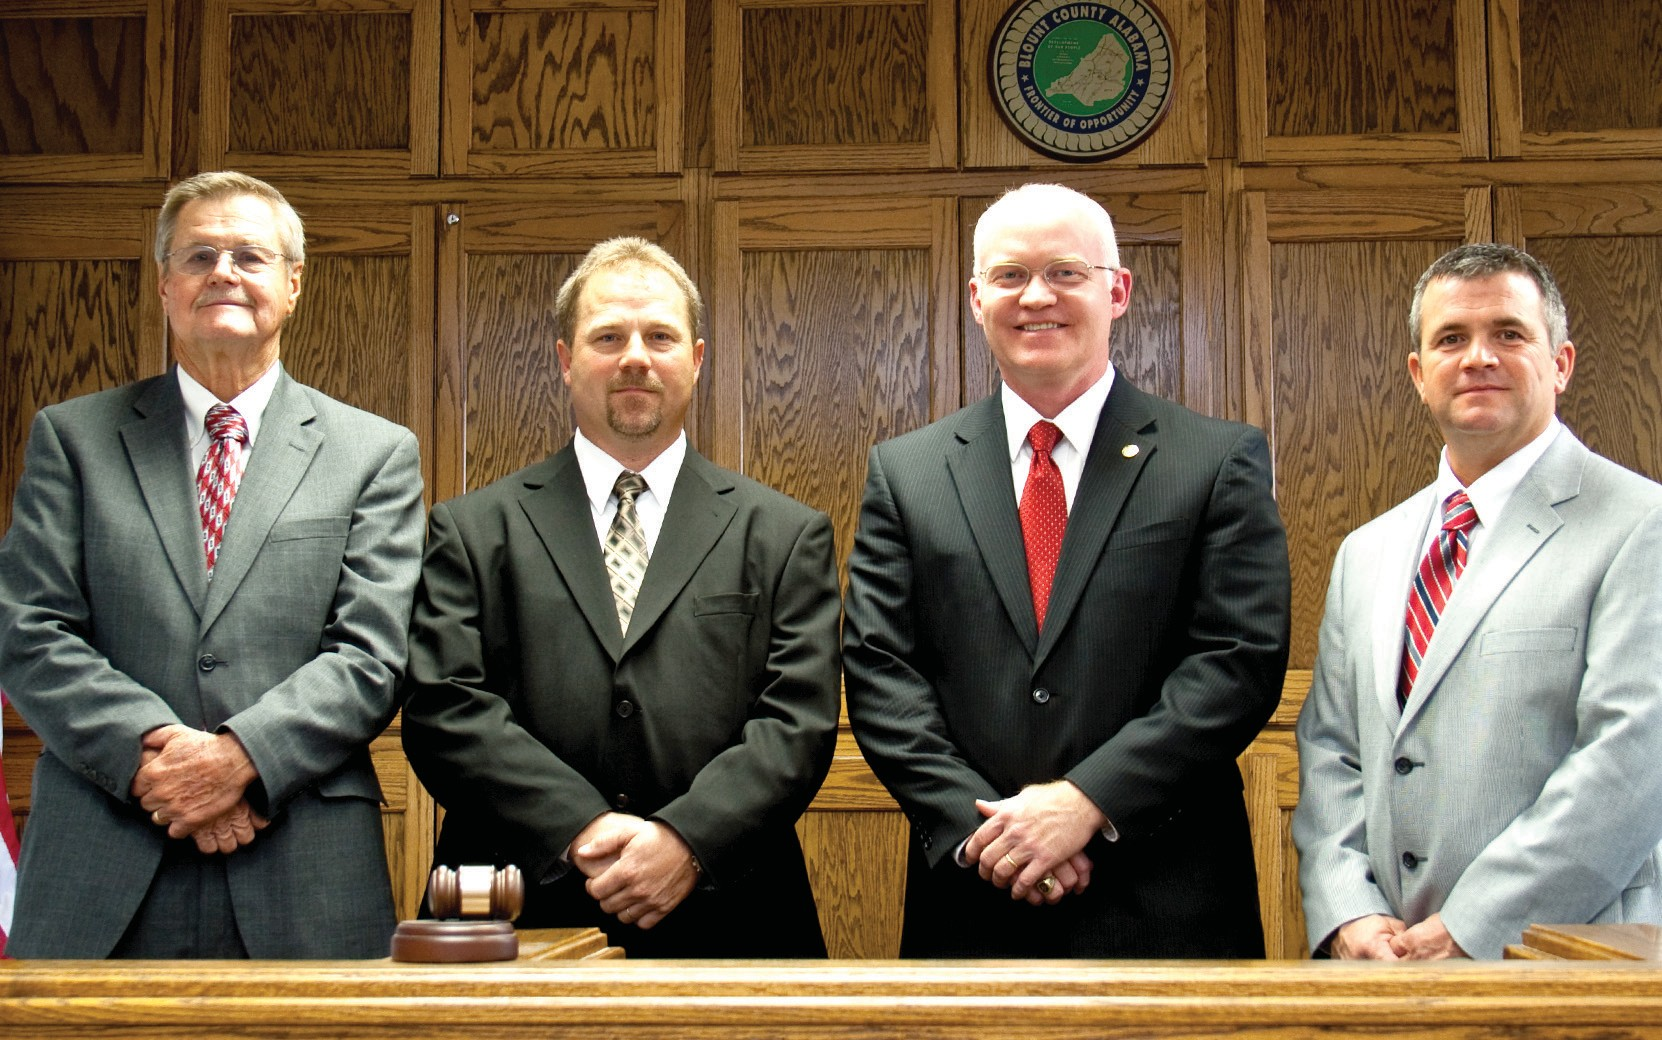 The new Blount County Commission is shown (from left): District 4's Waymon Pitts, District 3's Dean Calvert, Commission Chairman David Standridge, and District 1's Allen Armstrong. Missing is District 2 Commissioner Robert Bullard (see below). He died Tuesday, the day before the swearing in of the commission which, as its senior member, he had looked forward to leading.